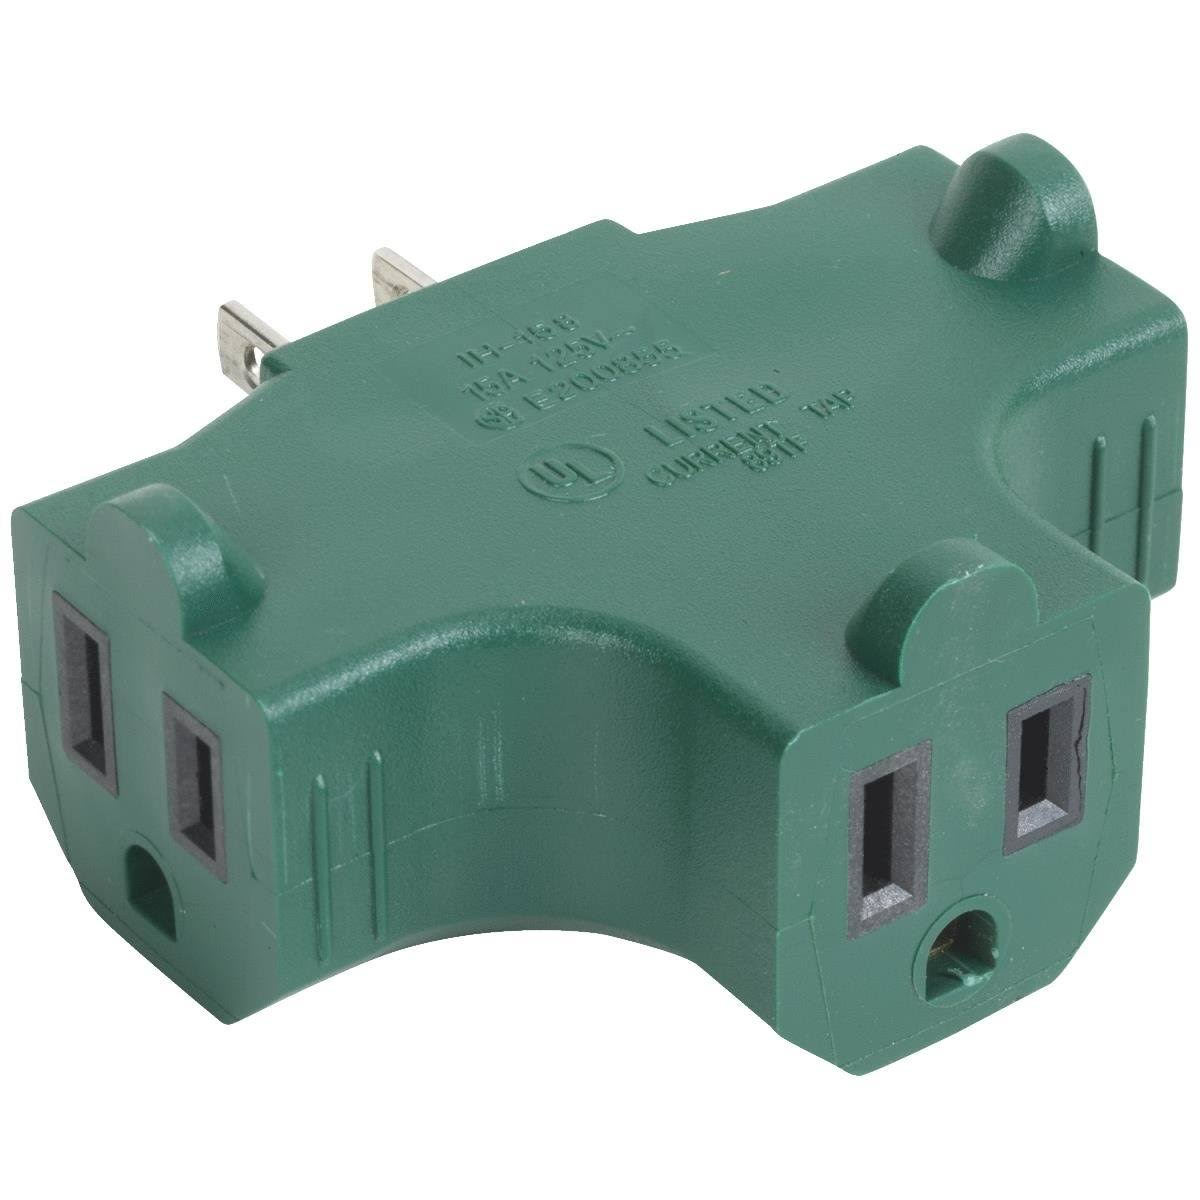 Do It Best Grounded Multi Outlet Cube Tap No Adapter - Green, 3pk